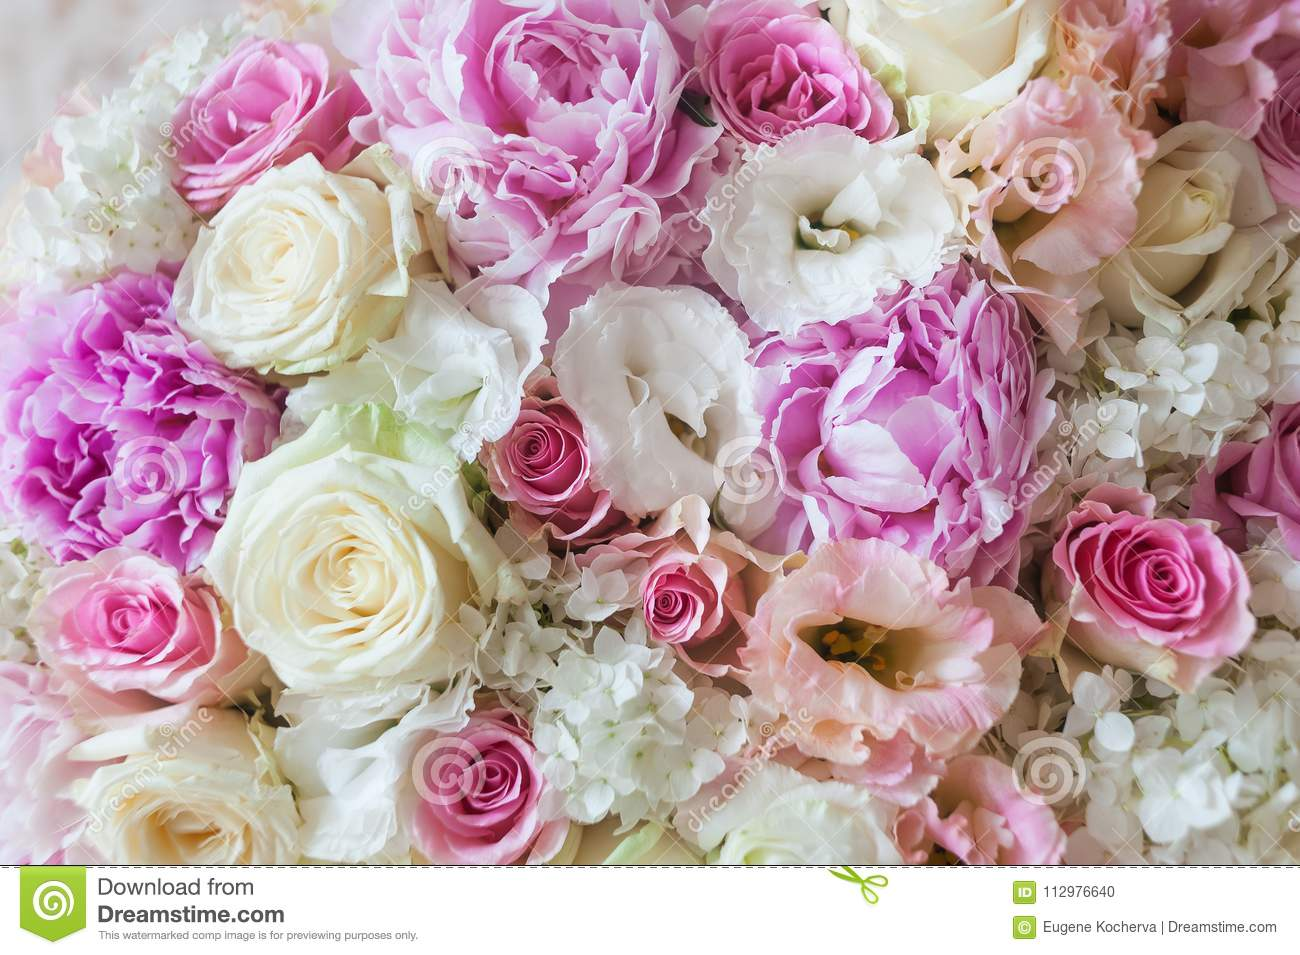 Beautiful flowers. A flower background from white roses, peonies, a falenopsisa, eustoma